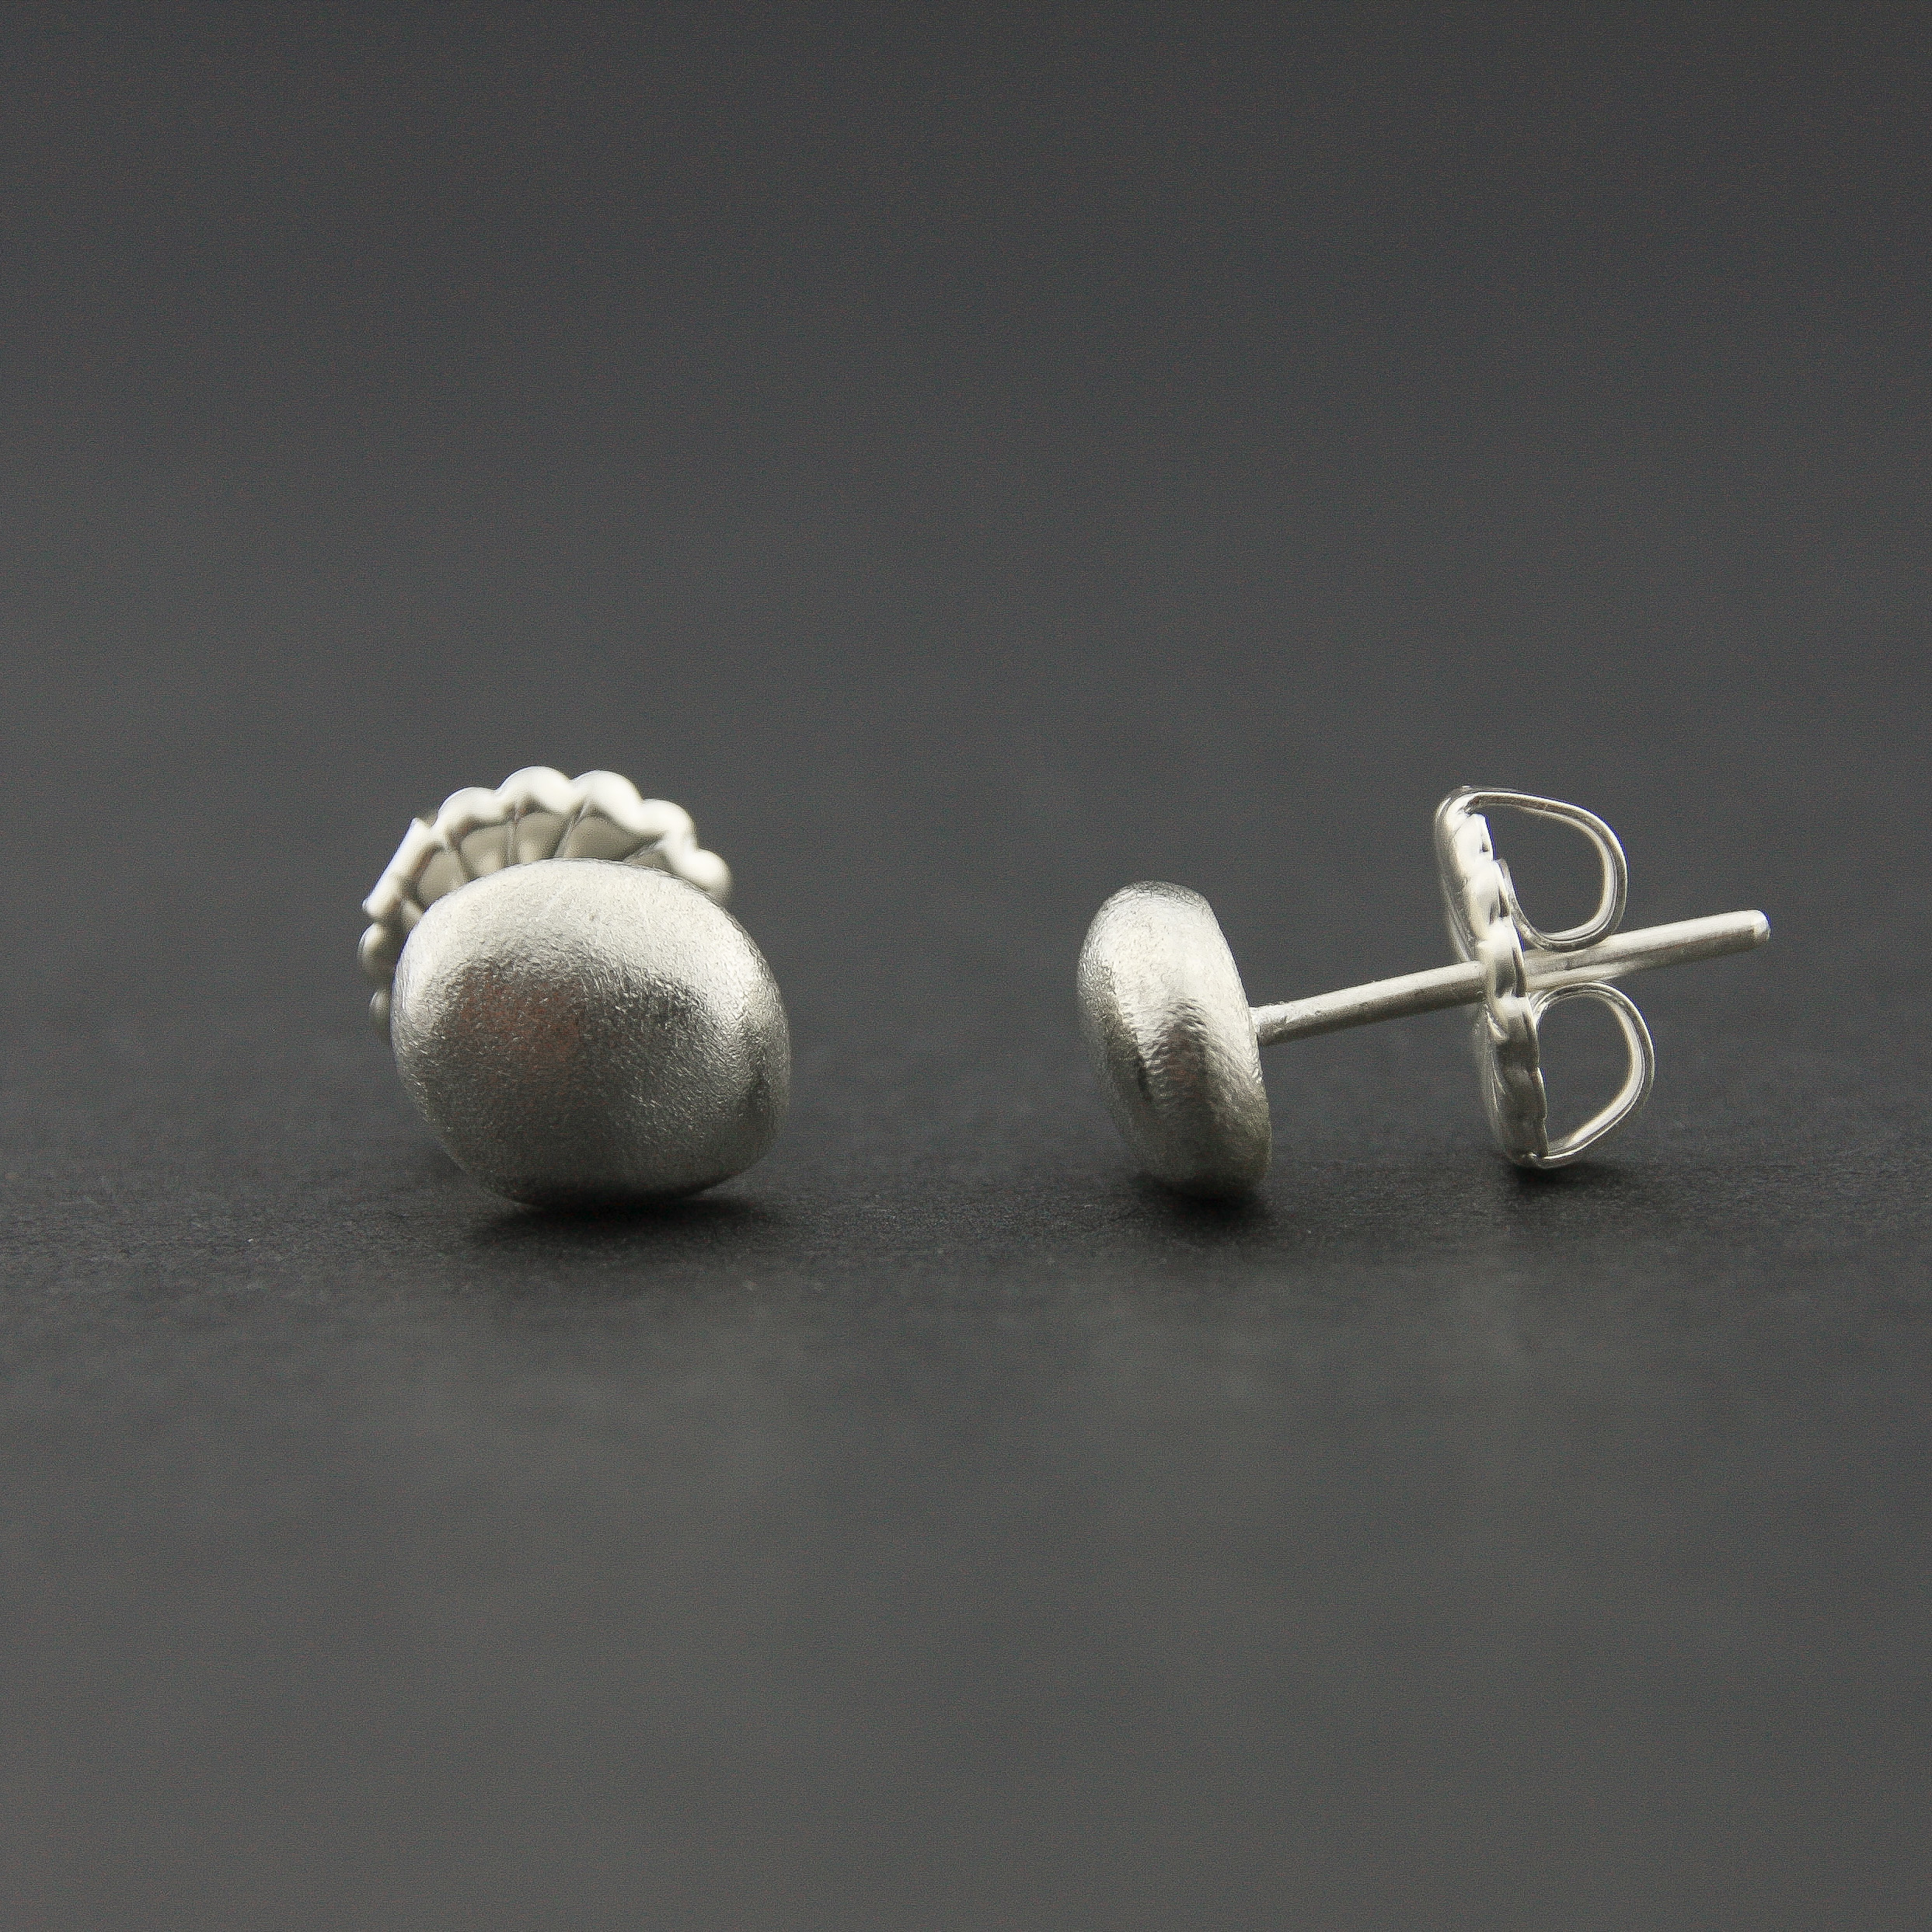 Leonie Simpson Jewellery pebble studs sterling silver